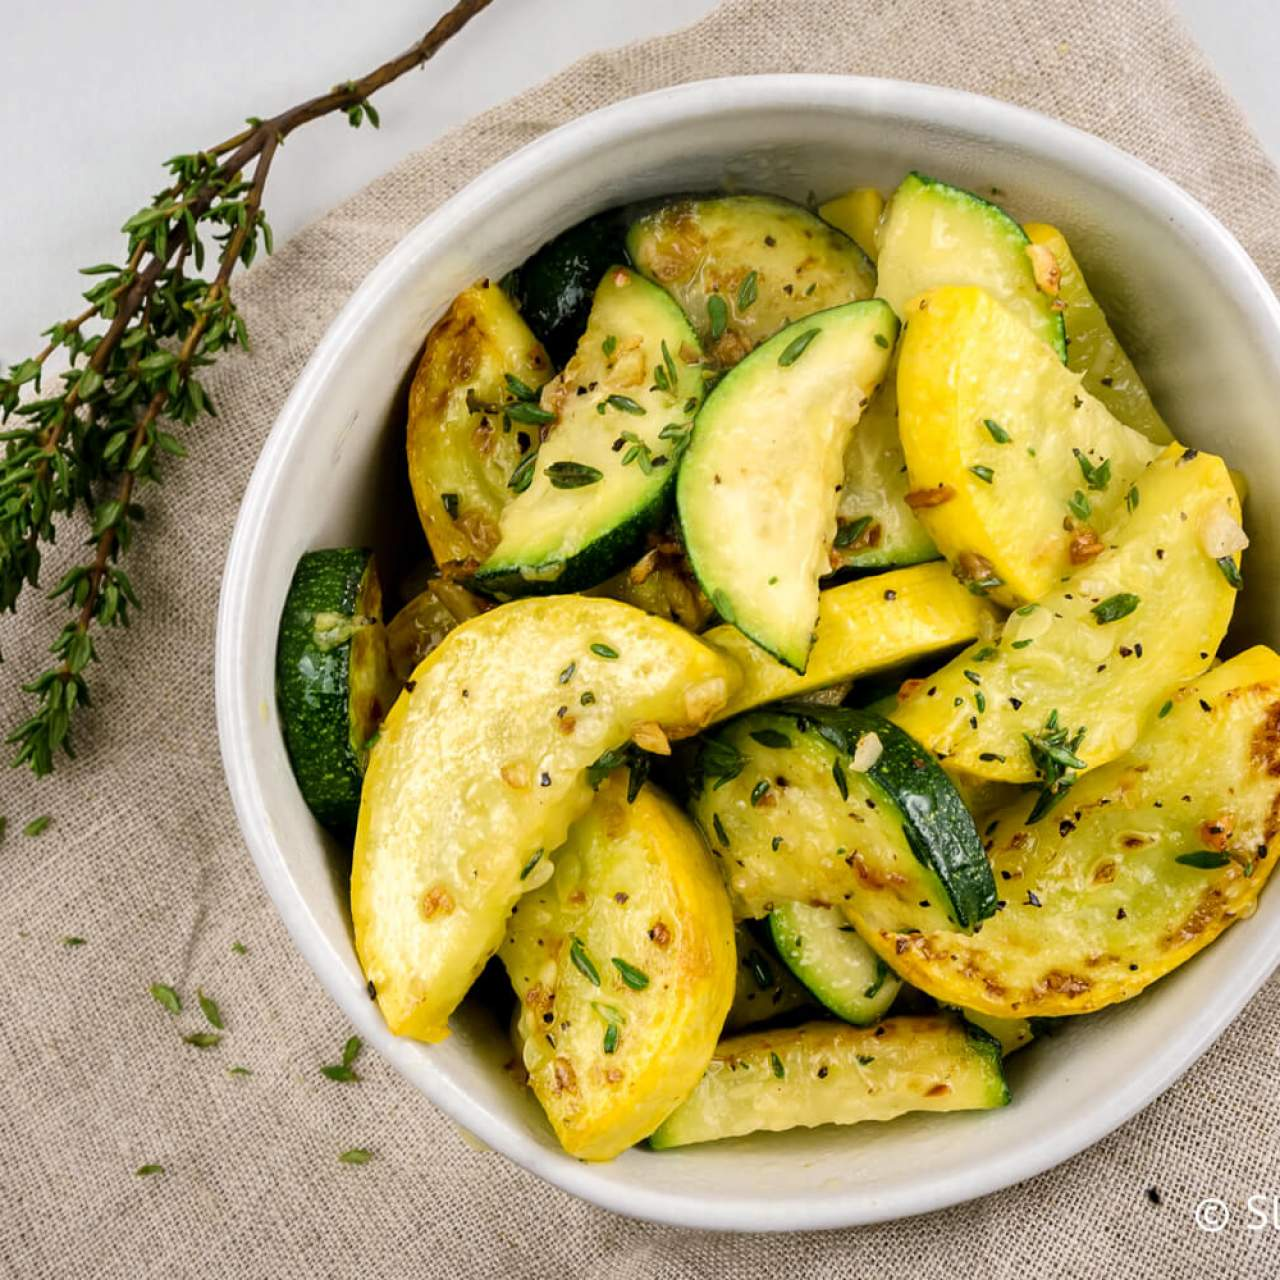 Family Style Zucchini - Serves 4